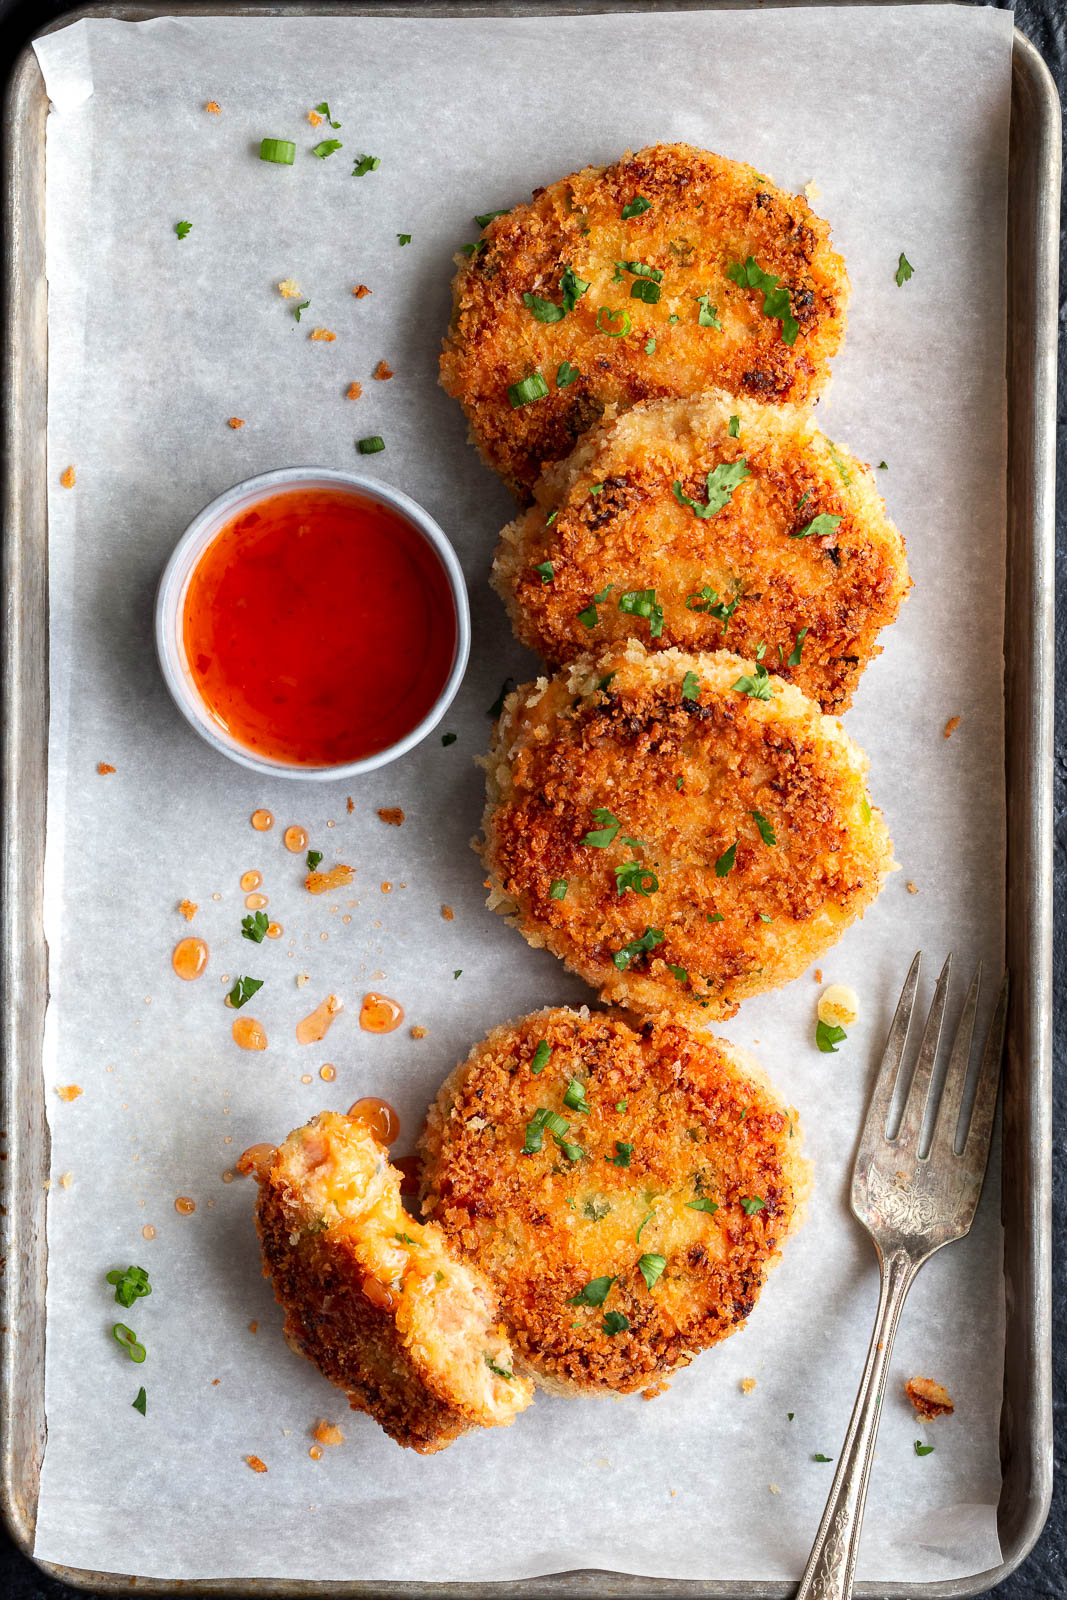 Top view of some salmon cakes served with sweet chili sauce.